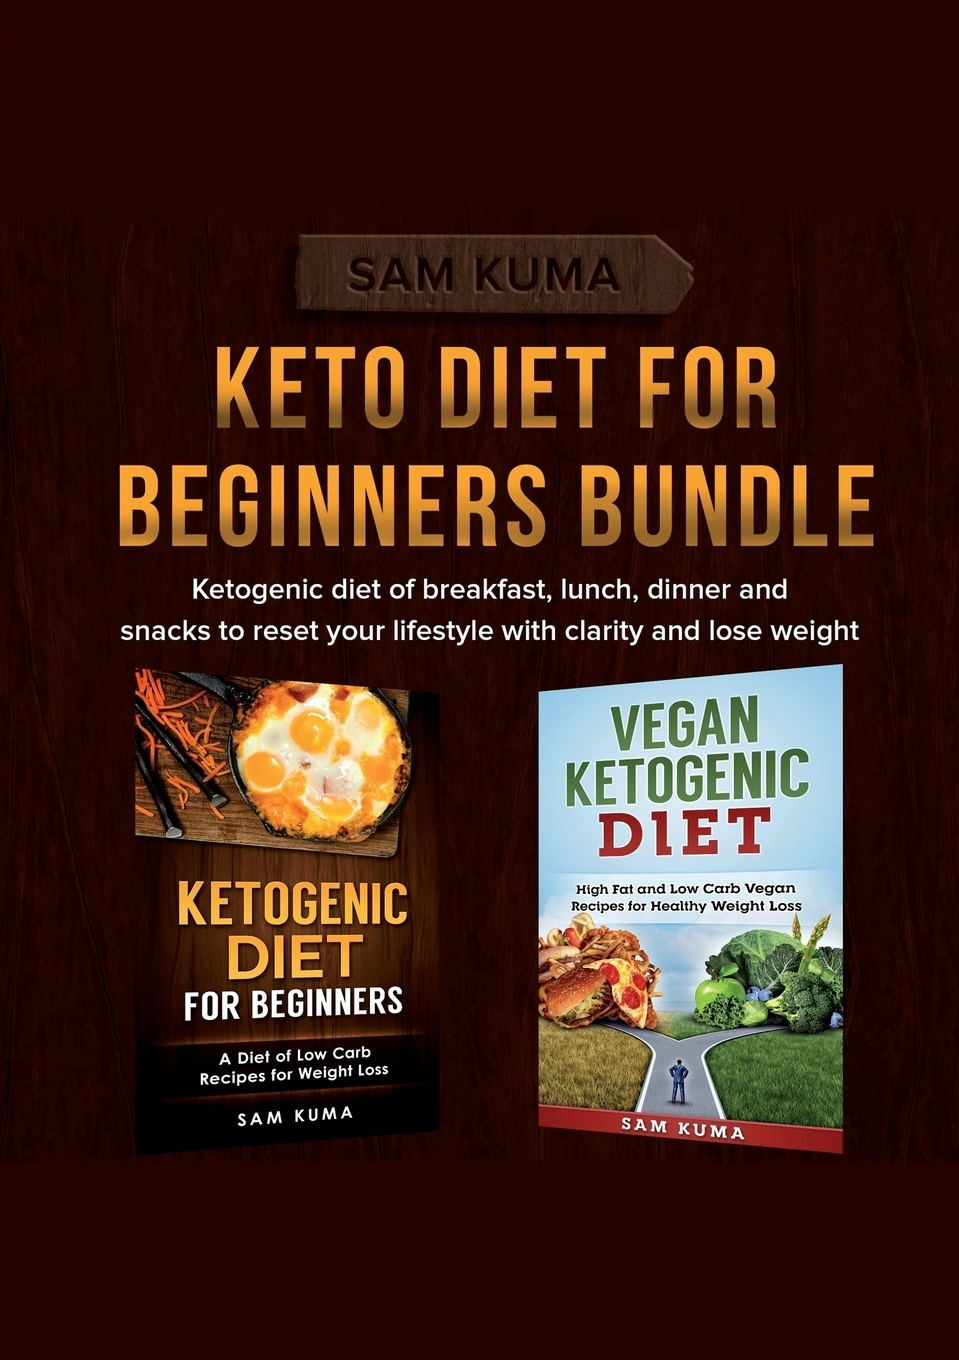 Sam Kuma Keto Diet for Beginners Bundle. Ketogenic diet of breakfast, lunch, dinner and snacks to reset your lifestyle with clarity and lose weight the adaptation diet